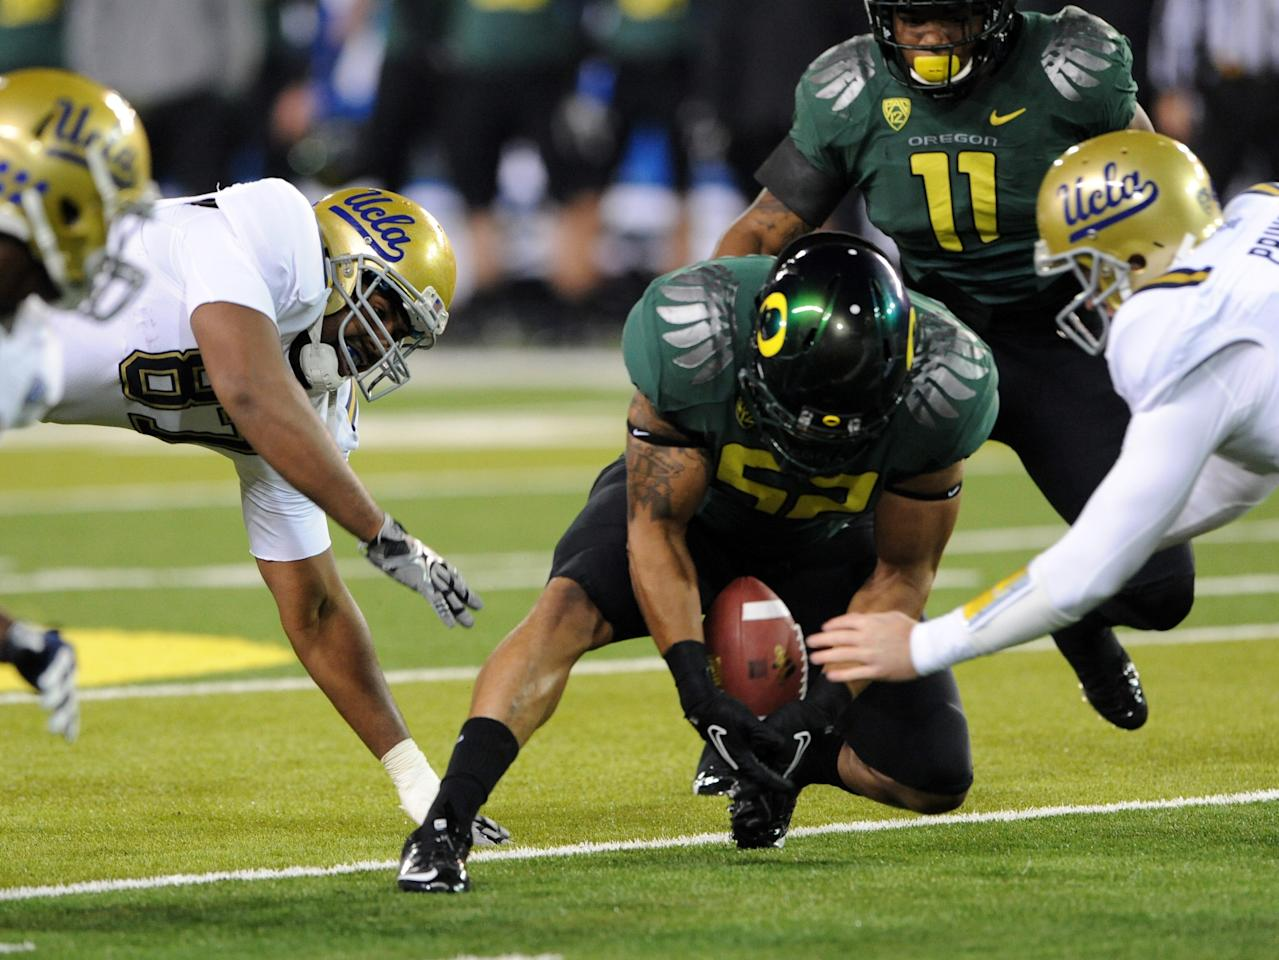 EUGENE, OR - DECEMBER 02 : Linebacker Dewitt Stuckey #52 of the Oregon Ducks recovers a fumble in the first quarter of the Pac-12 Championship game against the UCLA Bruins at Autzen Stadium on December 2, 2011 in Eugene, Oregon. (Photo by Steve Dykes/Getty Images)